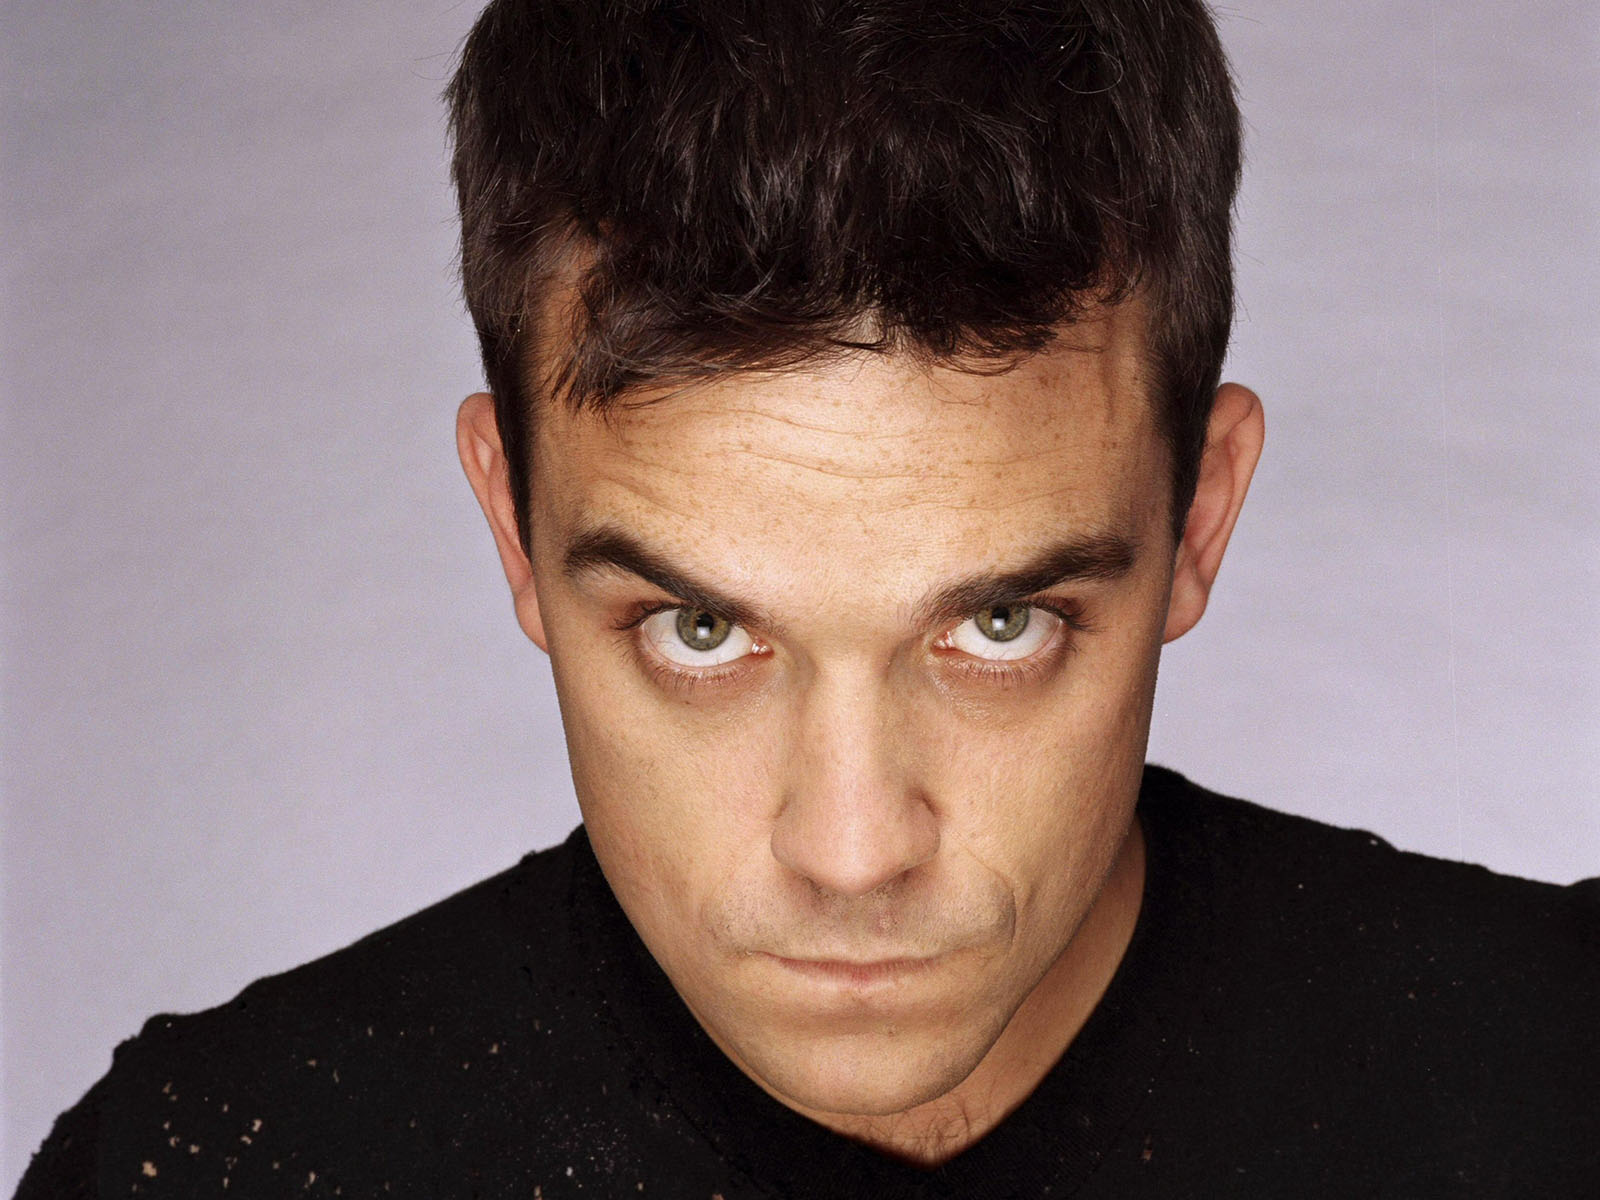 Robbie_Williams_12_1600x1200.jpg